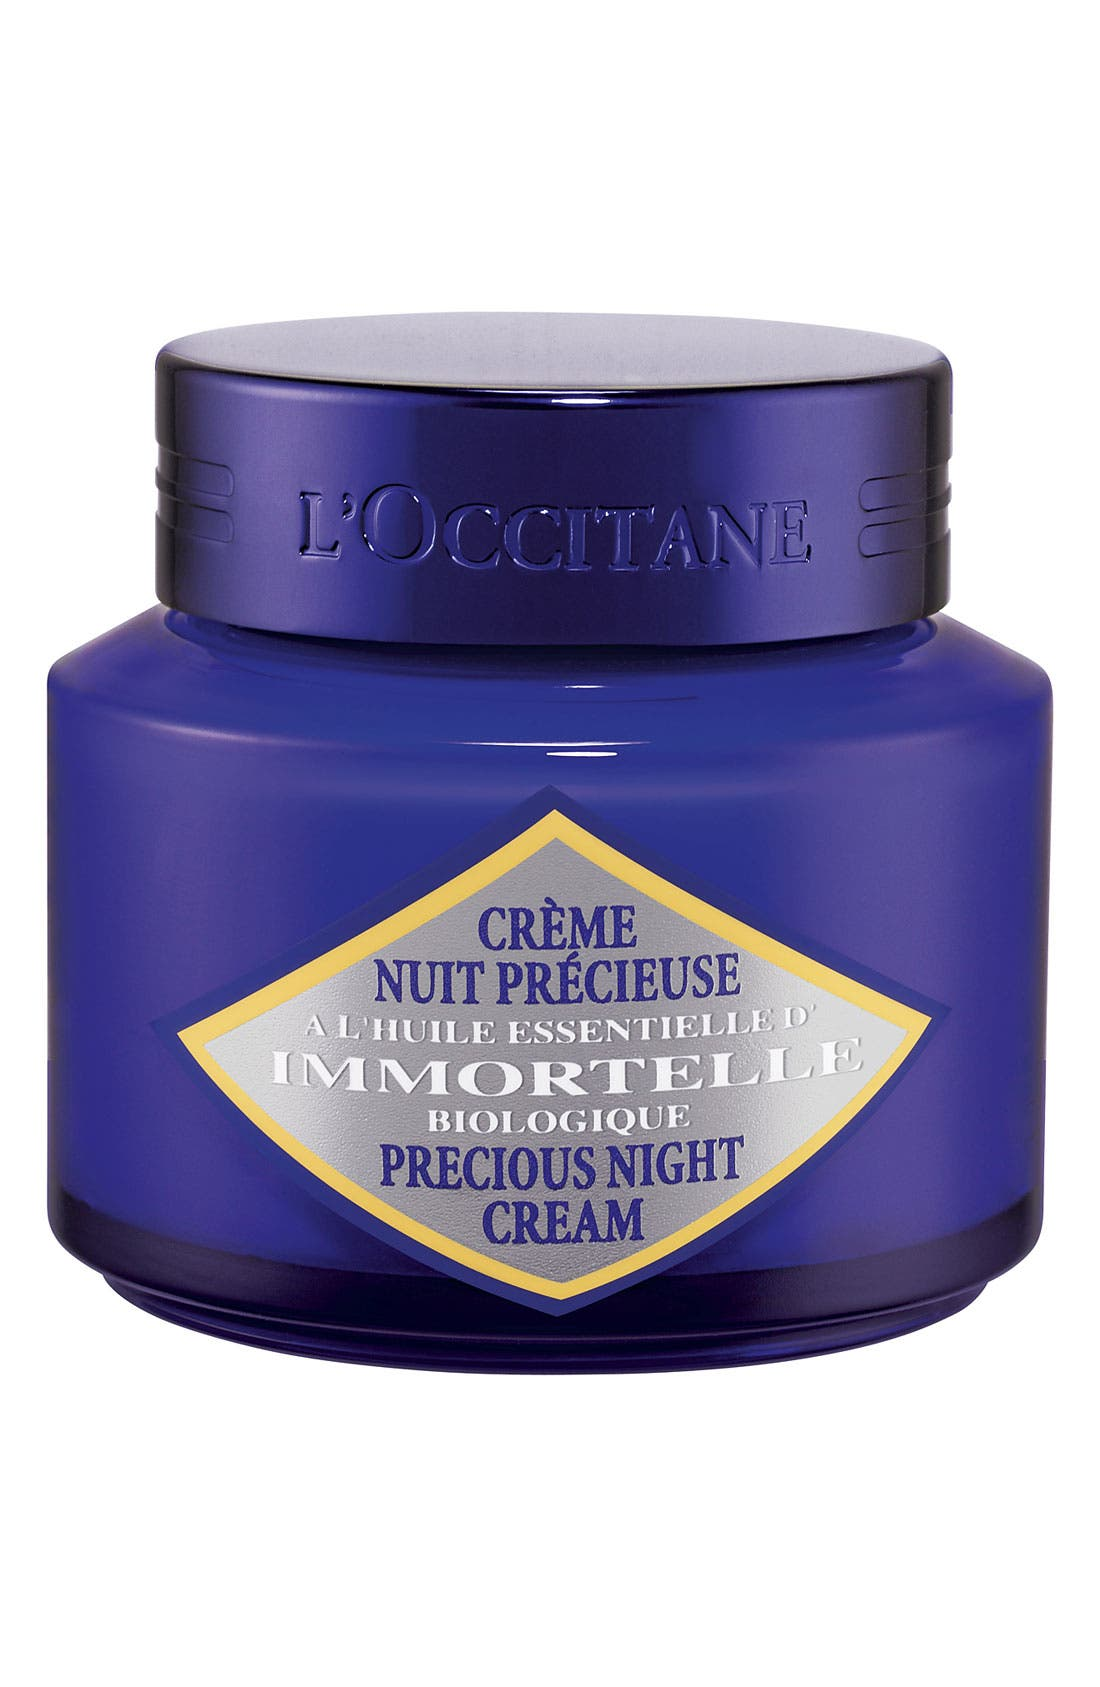 L'Occitane 'Immortelle' Precious Night Cream